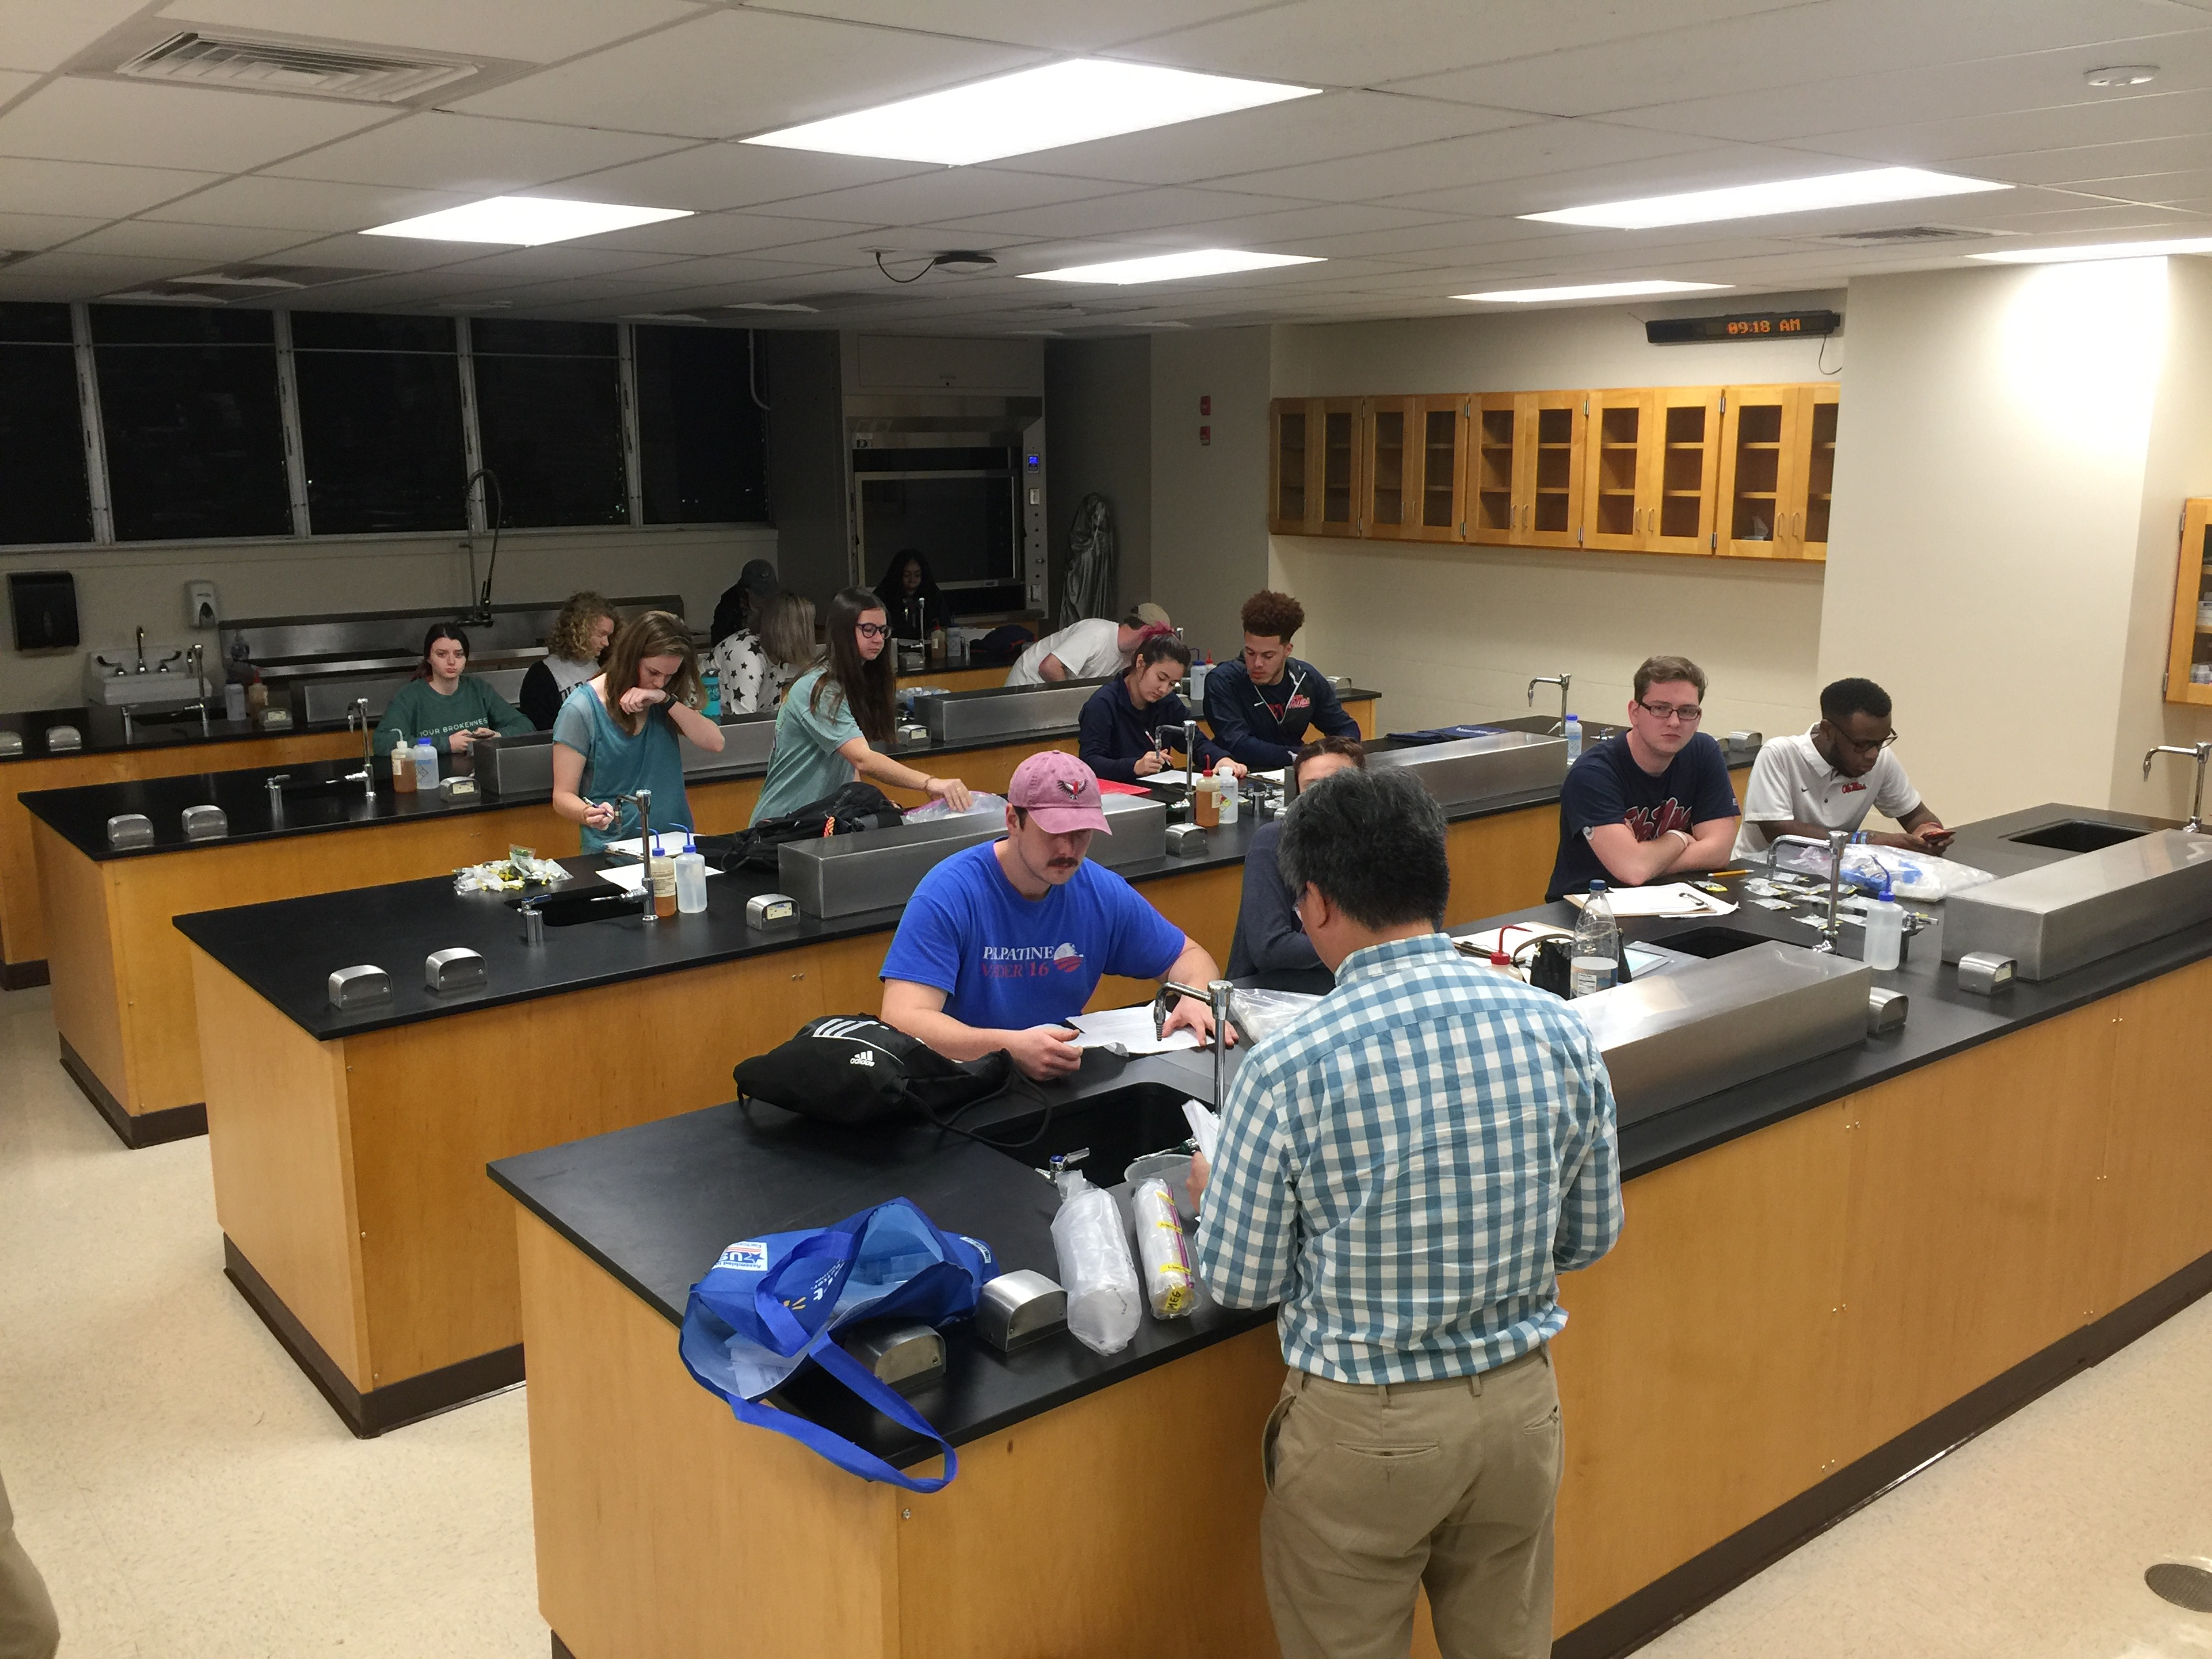 Students and faculty in lab conducting research on tissue sampling